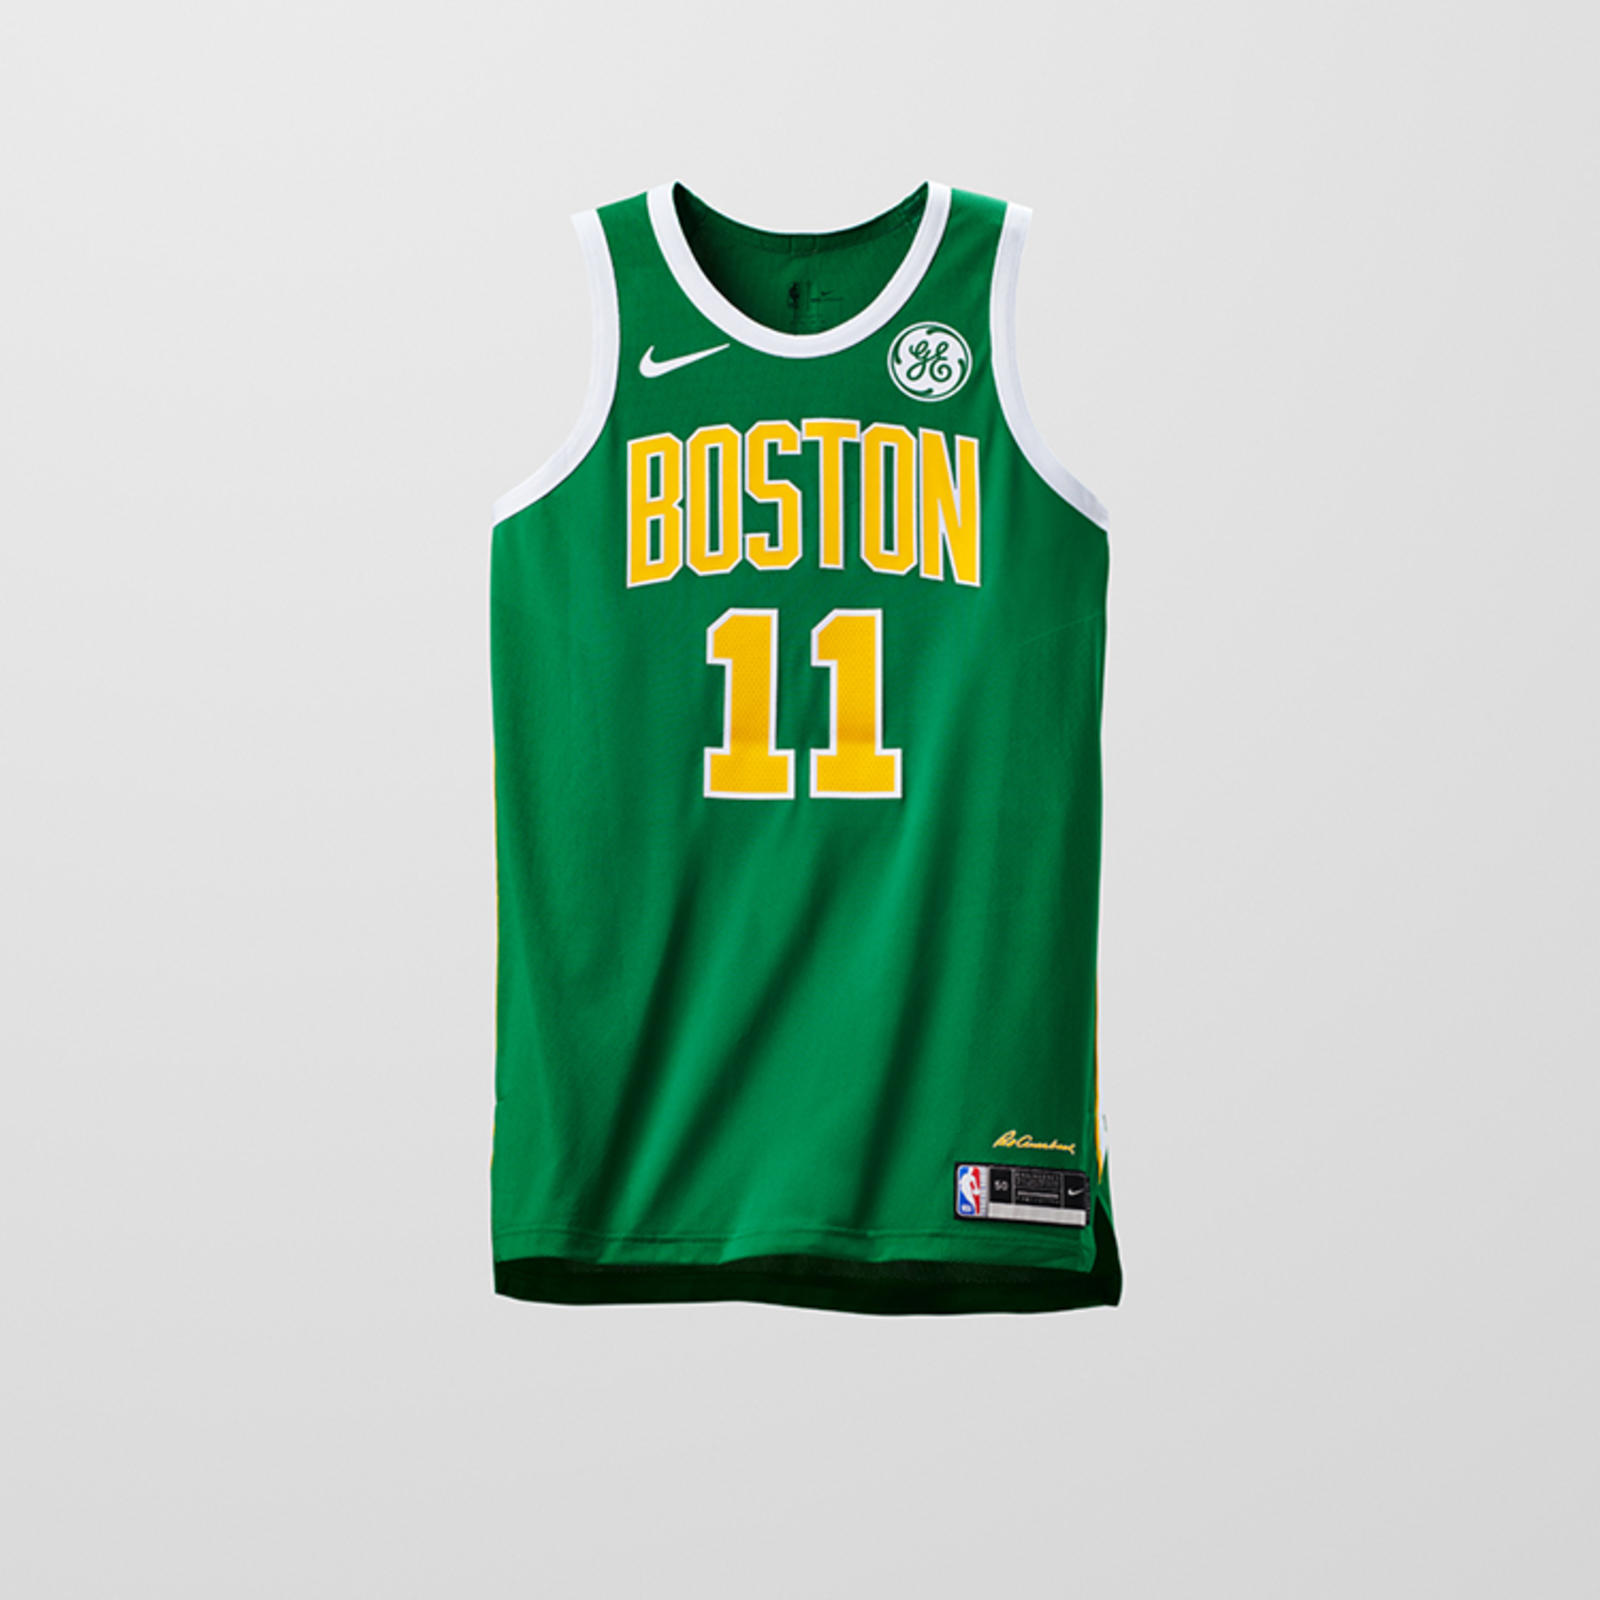 9b34024f56d Introducing the Nike x NBA EARNED Edition Uniforms 1